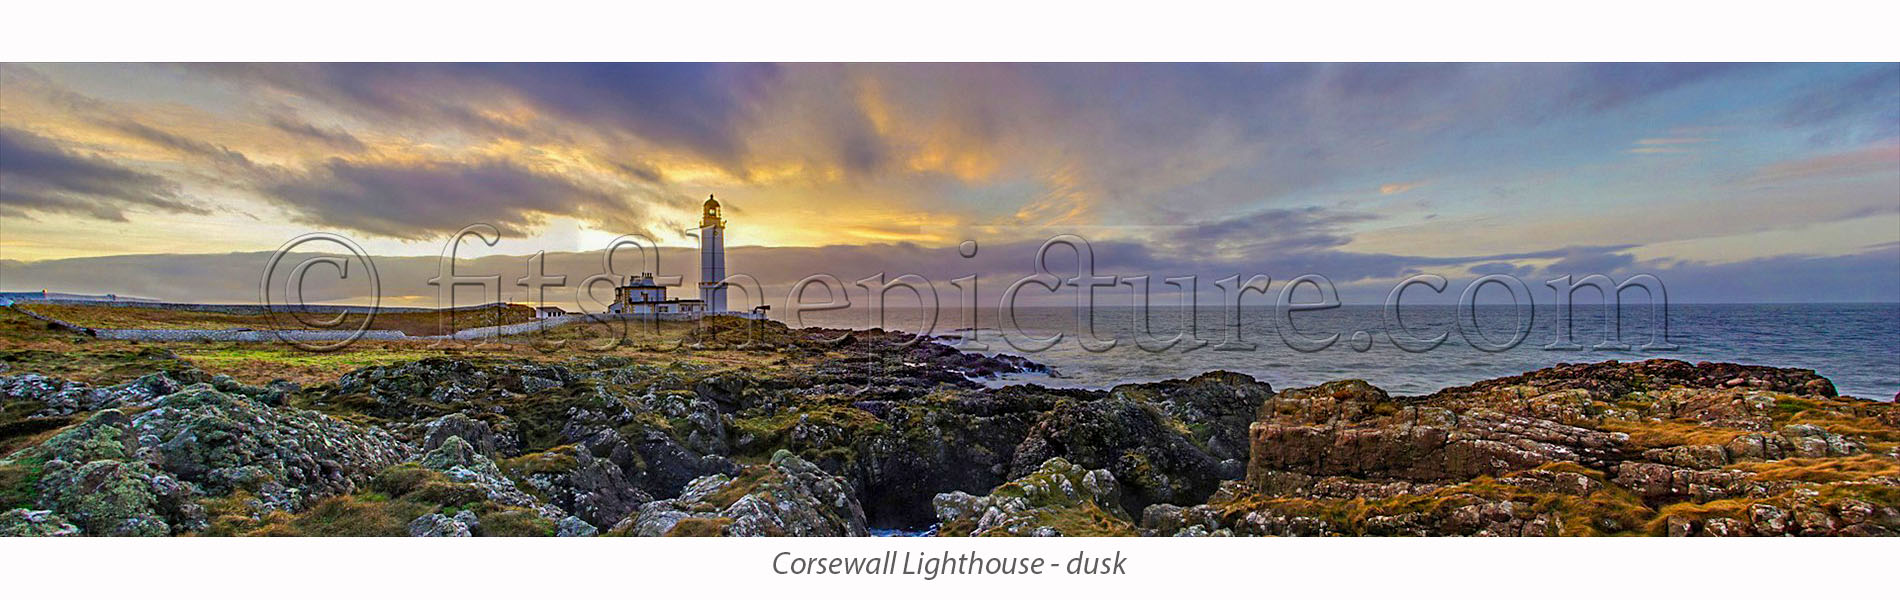 corsewall_lighthouse_dusk.jpg